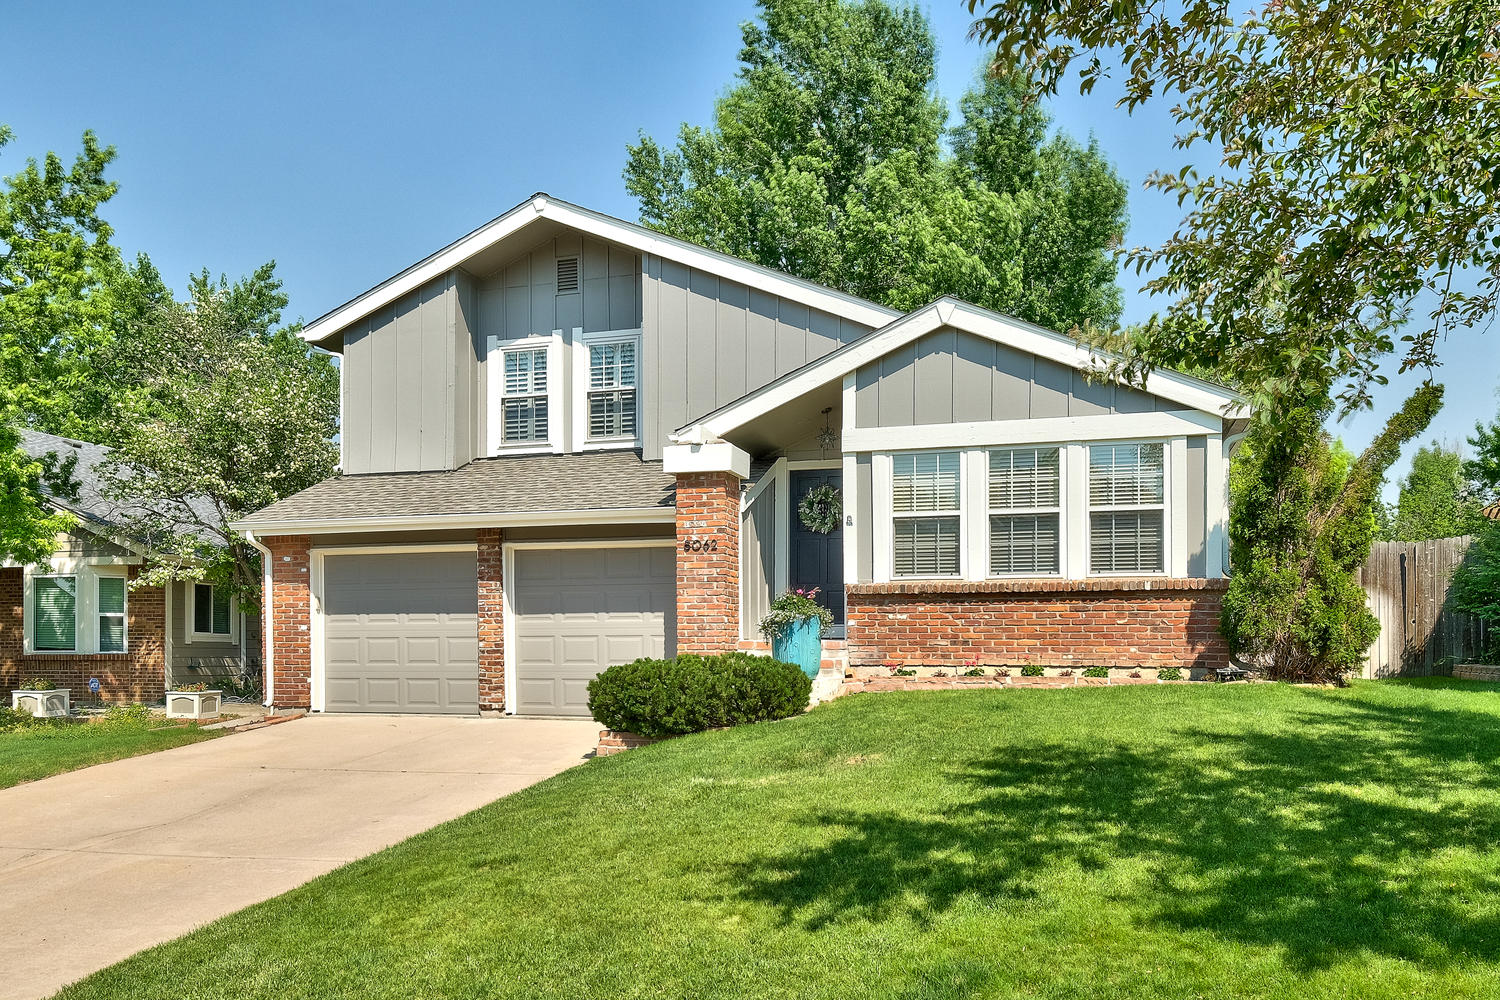 Single Family Home for Sale at Charming Willow Creek Home Located on a Cul-de-sac Steps from Park 8062 S Rosemary Ct Centennial, Colorado, 80112 United States